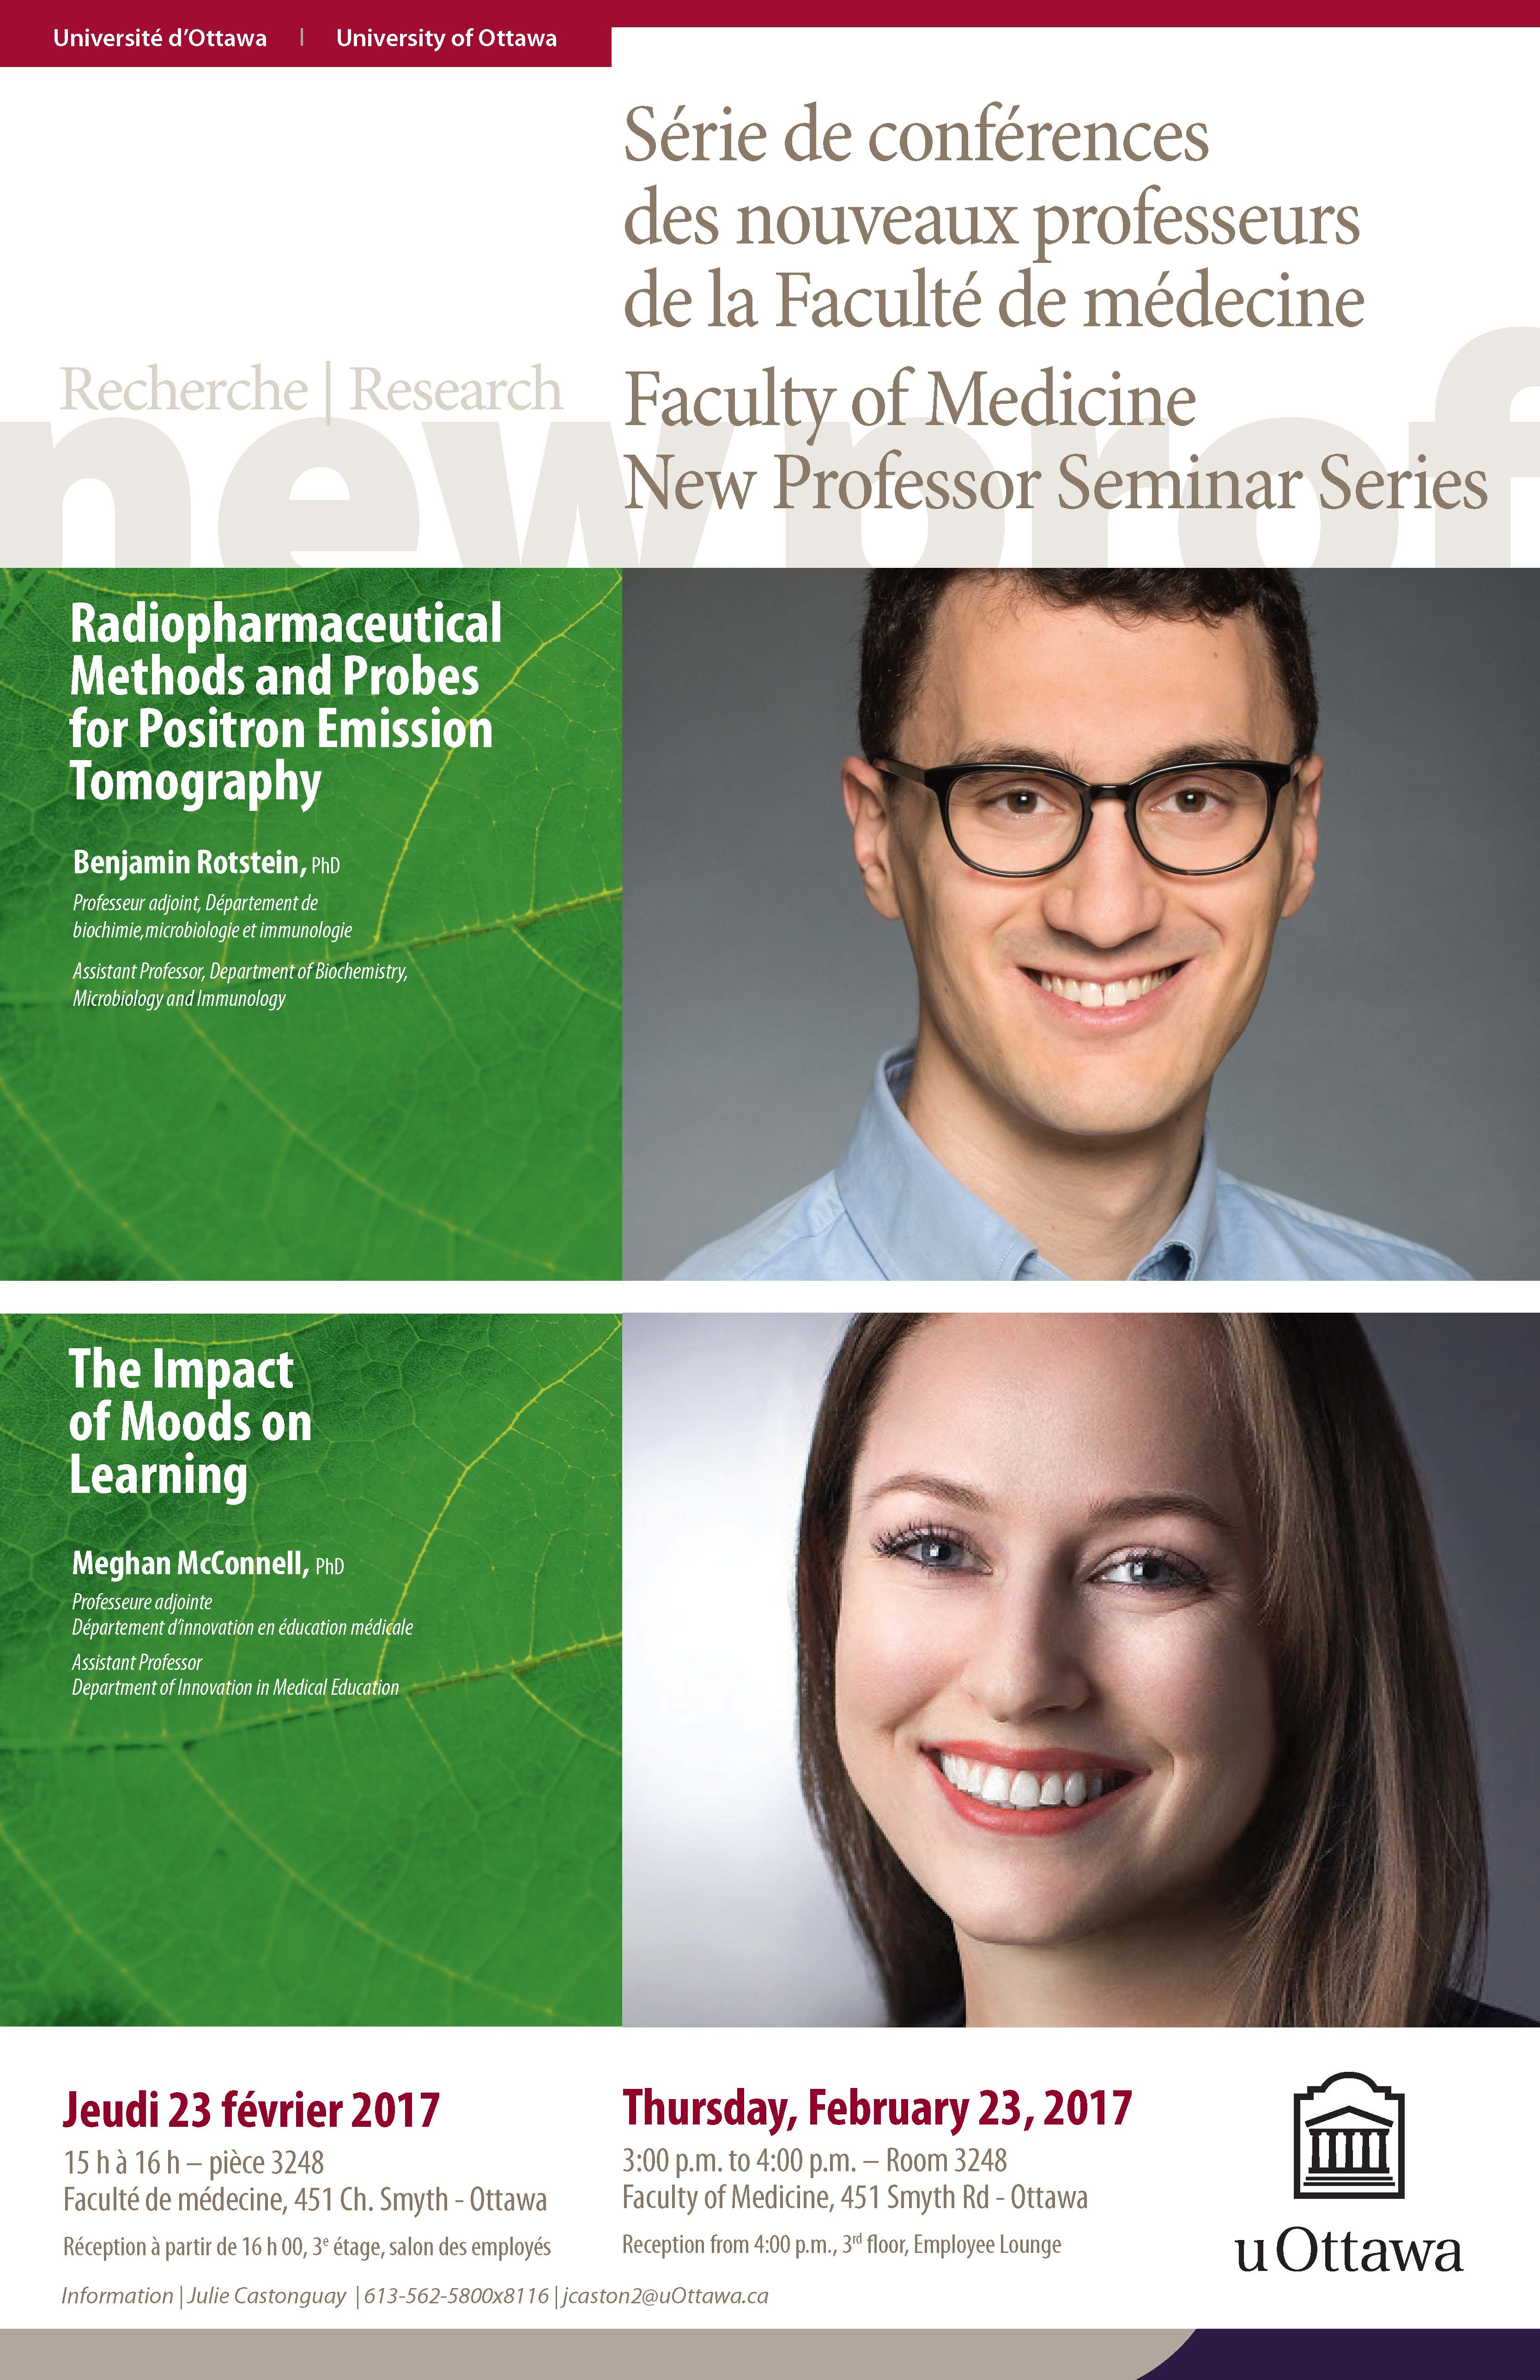 New Professor Seminar Series